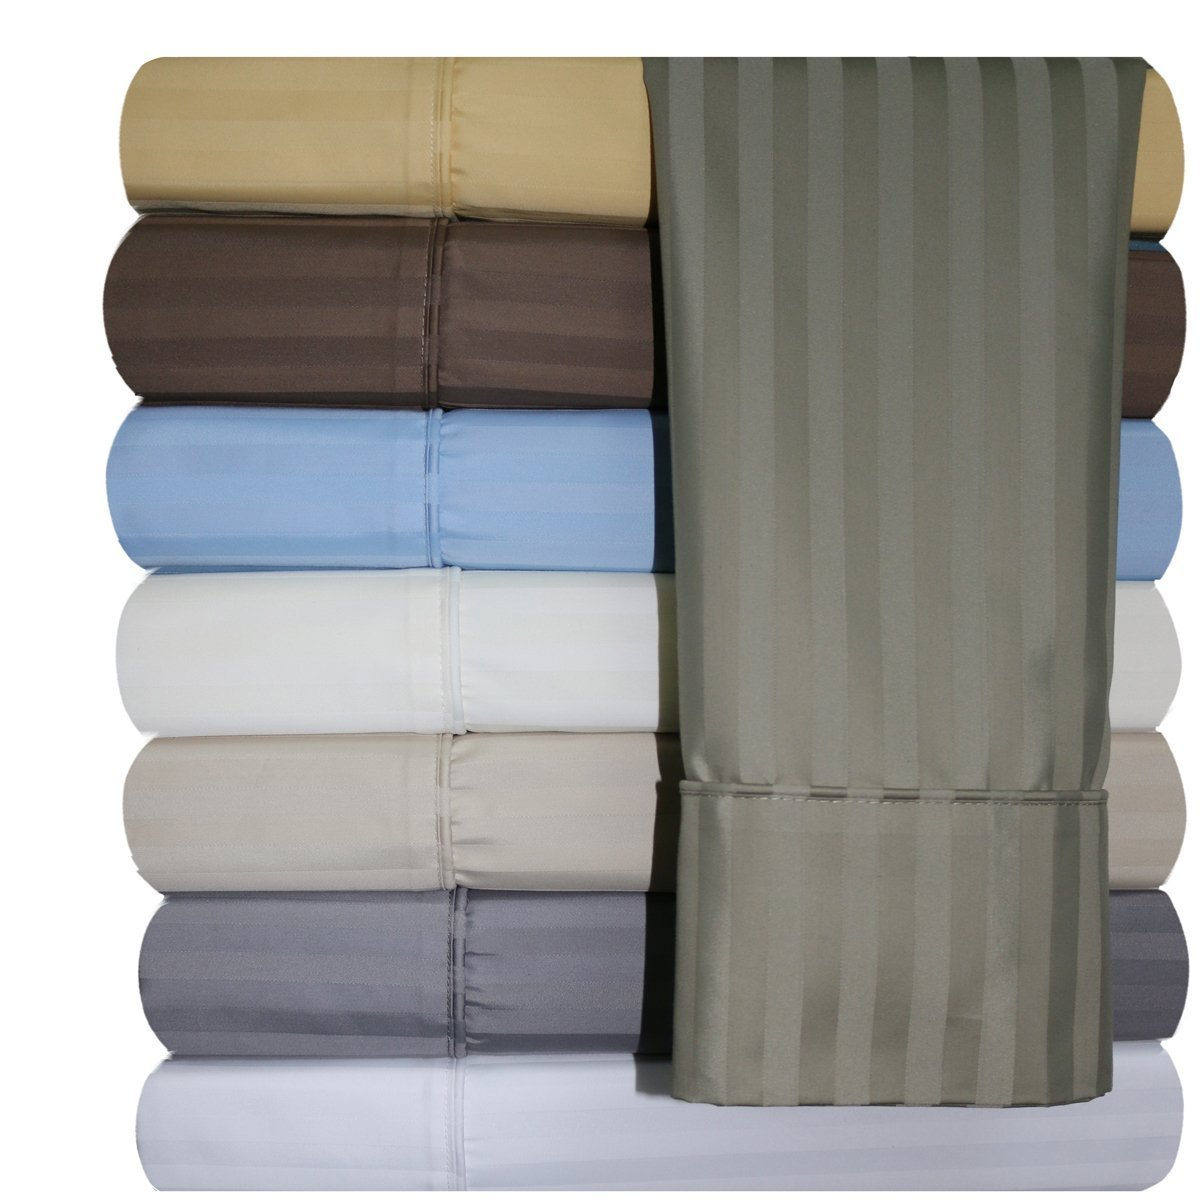 Royal Hotel 620-Thread-Count Sheet Set, Wrinkle-Free Cotton-Blend Sheets, Sateen Striped, Deep Pocket, Queen size, Beige